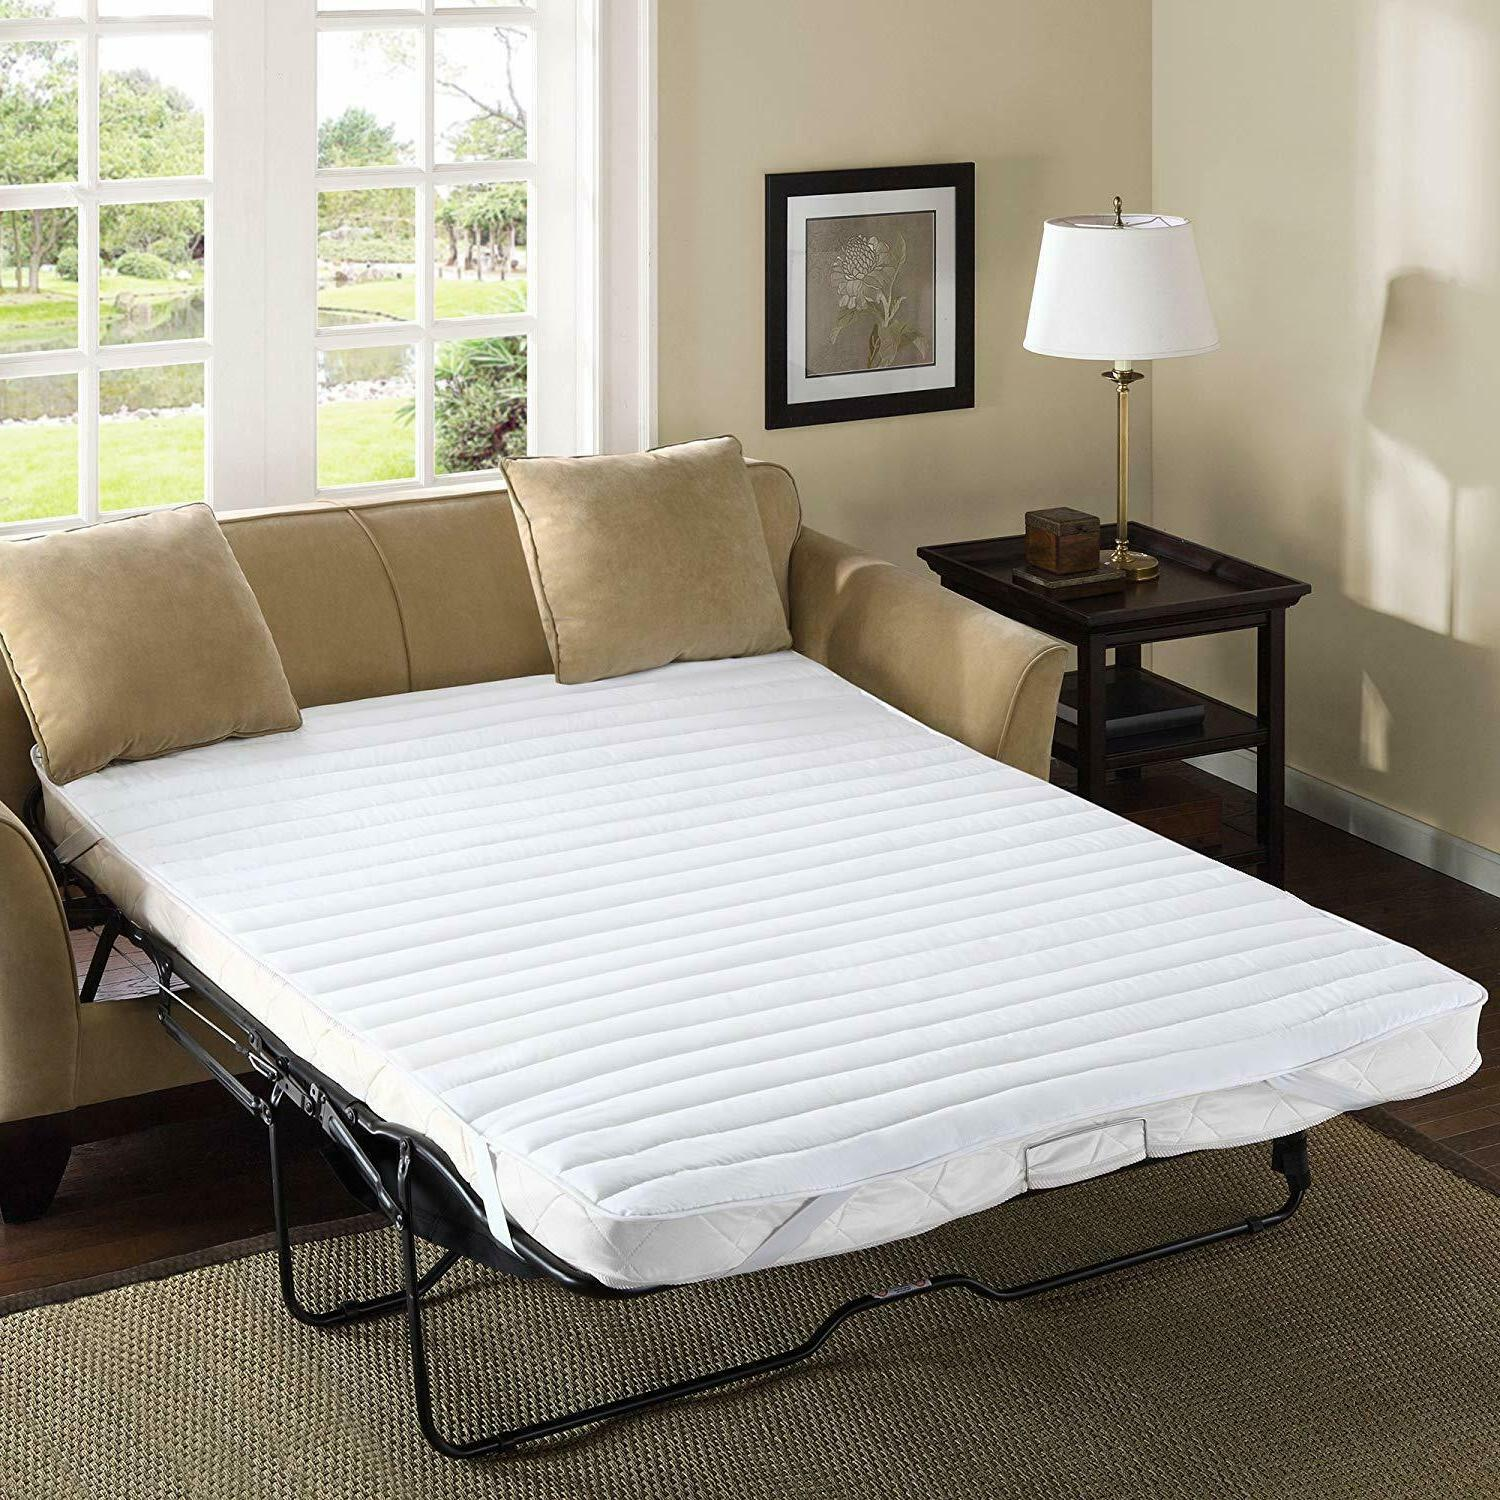 pull out sofa bed mattress pad bedding